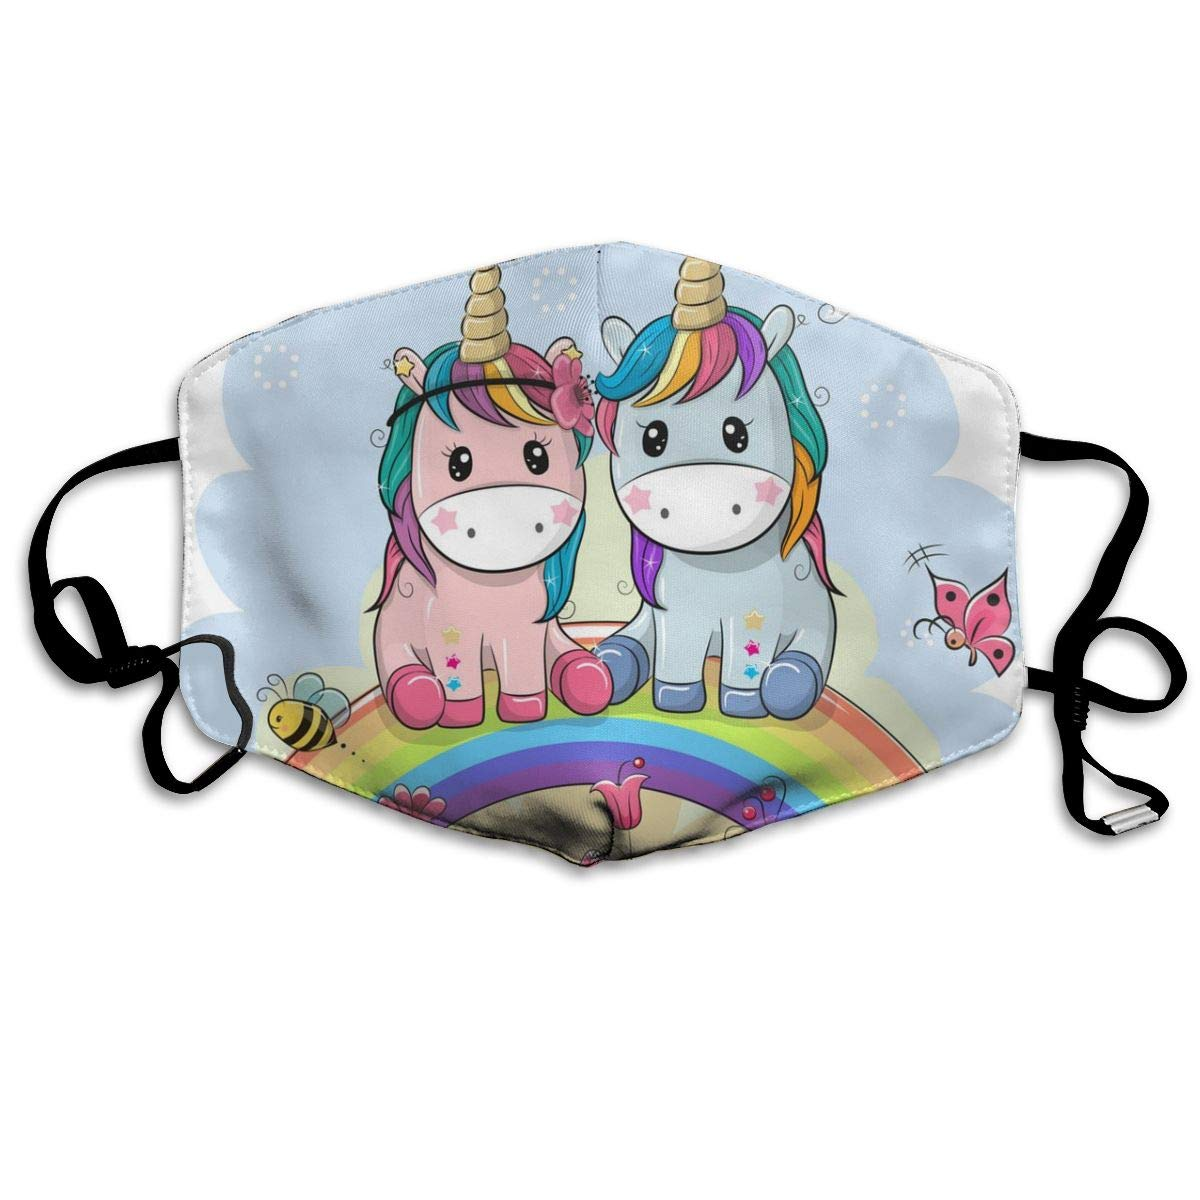 Mouth Mask Rainbow Unicorn Print Masks - Breathable Adjustable Windproof Mouth-Muffle, Camping Running For Women And Men